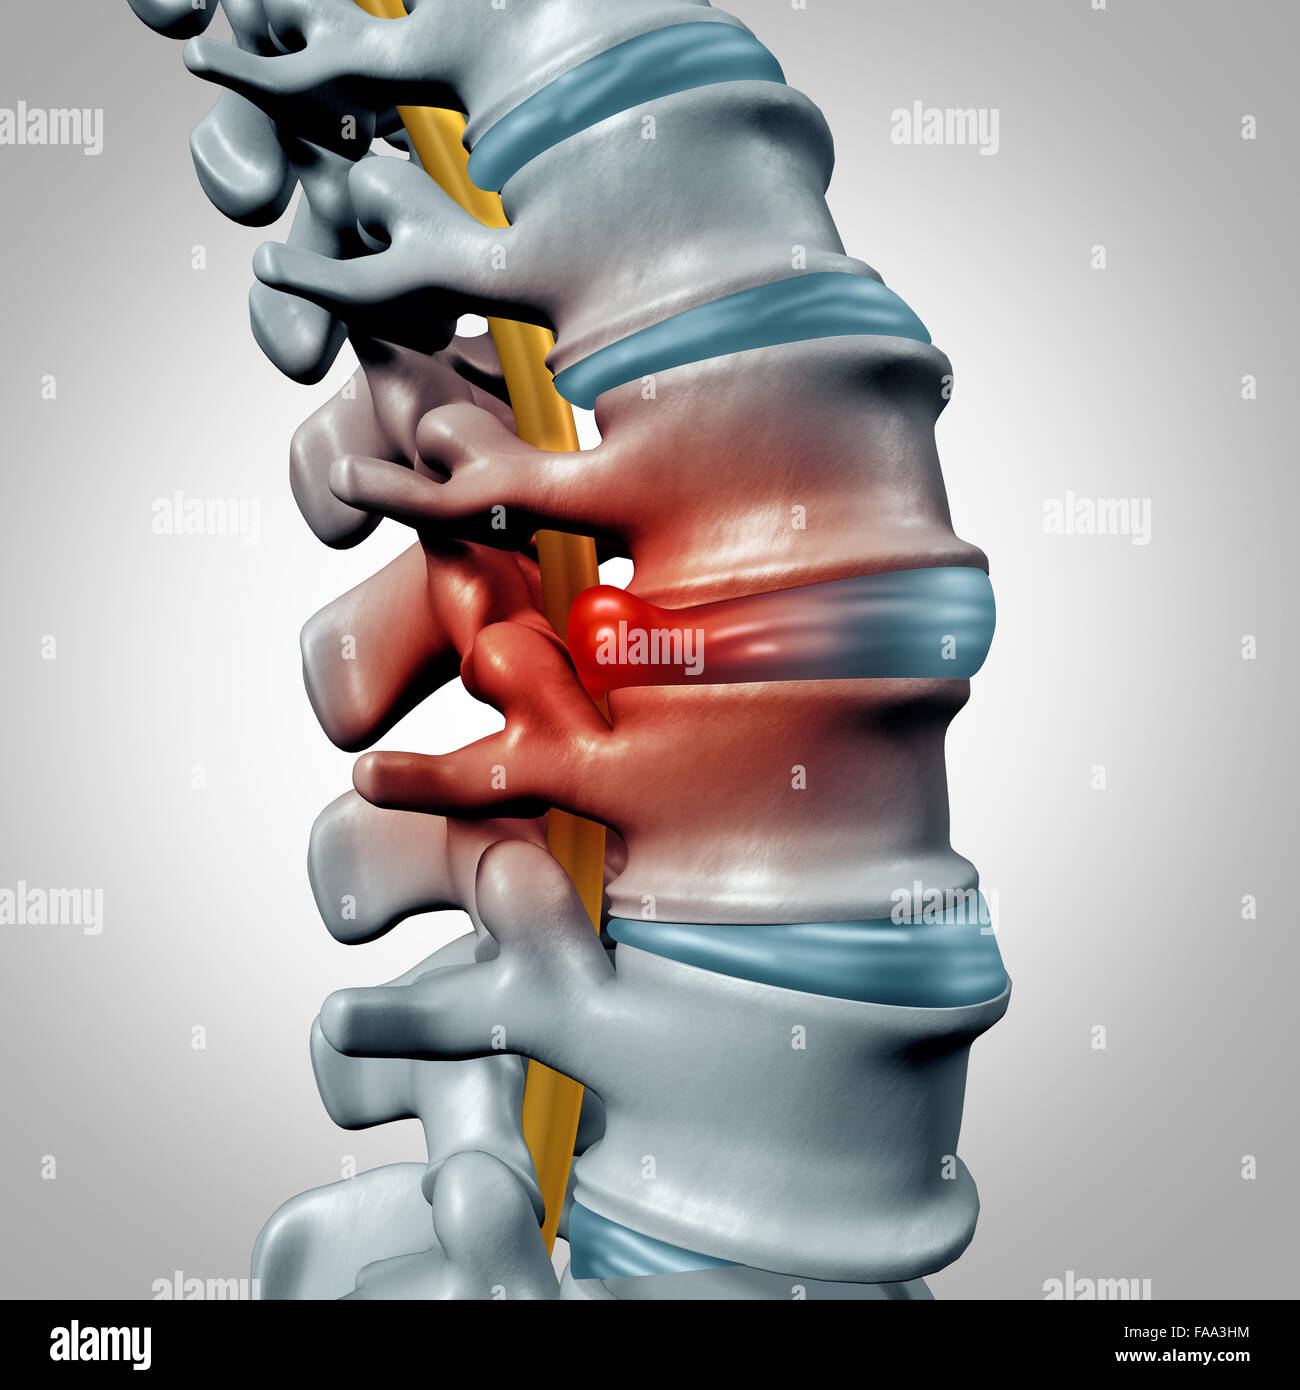 Herniated disk concept and spine pain diagnostic as a human spinal system symbol as medical health problem and anatomy - Stock Image